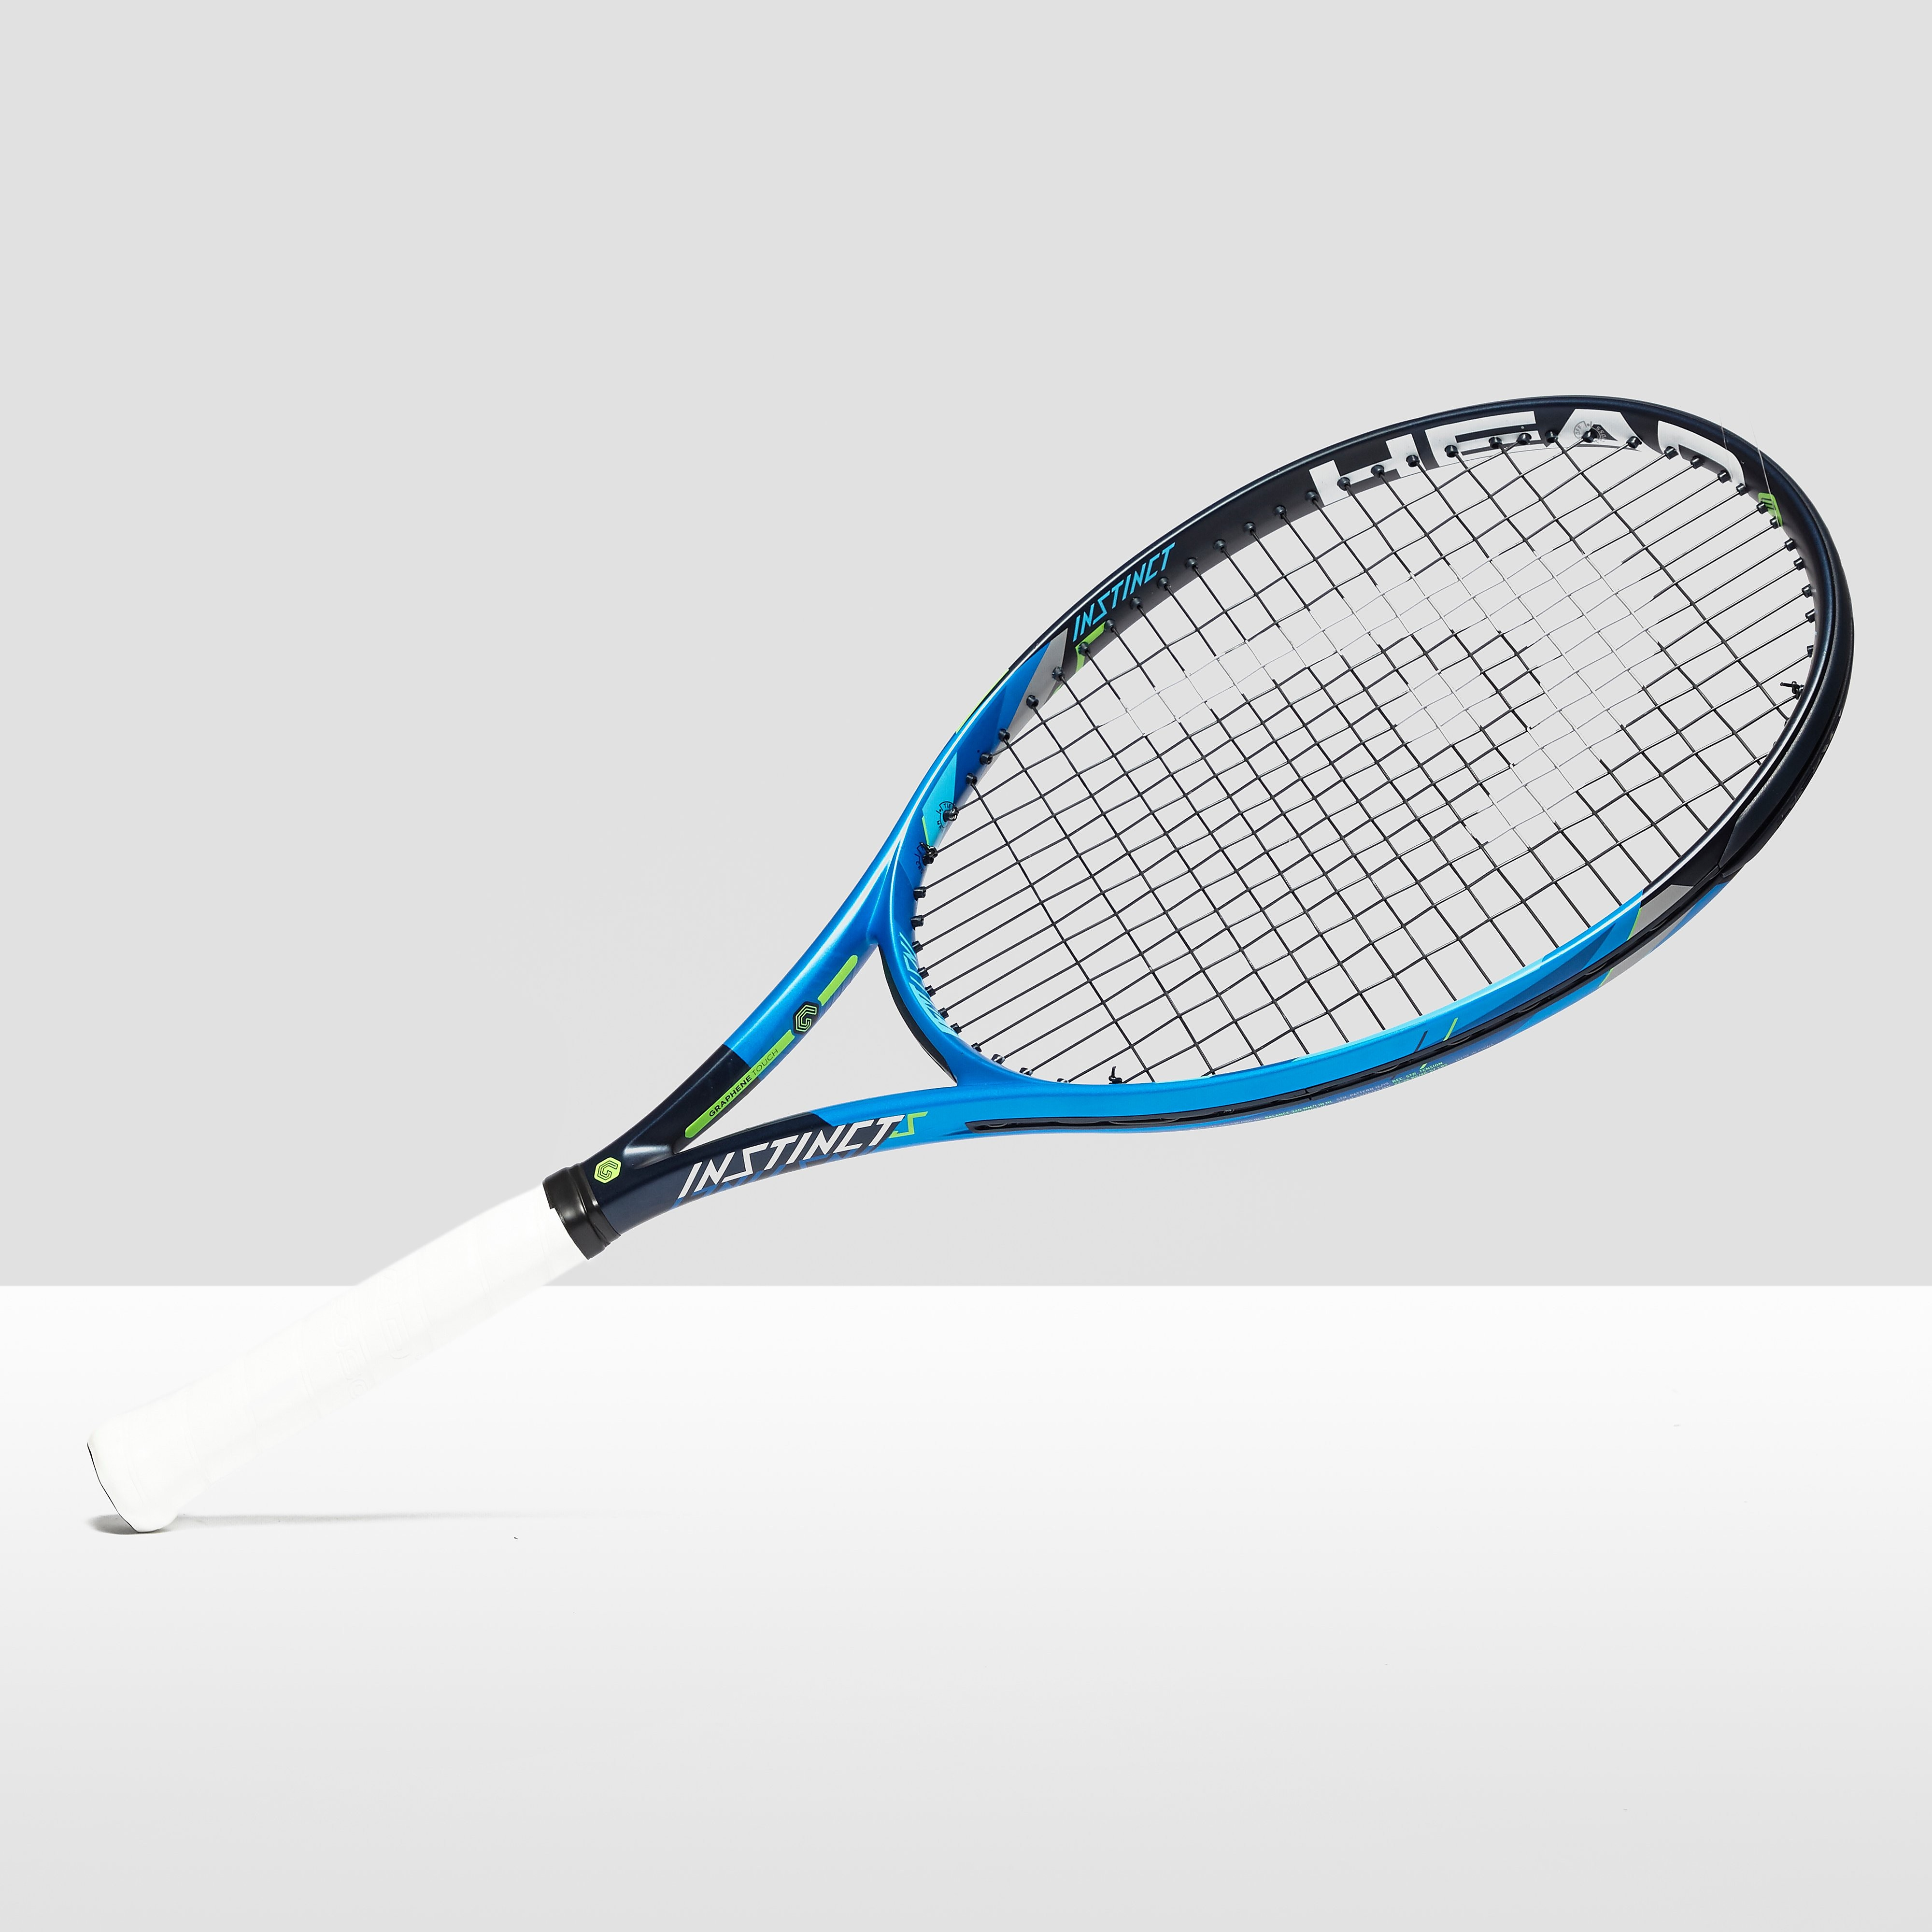 Head Instinct S Tennis Racket